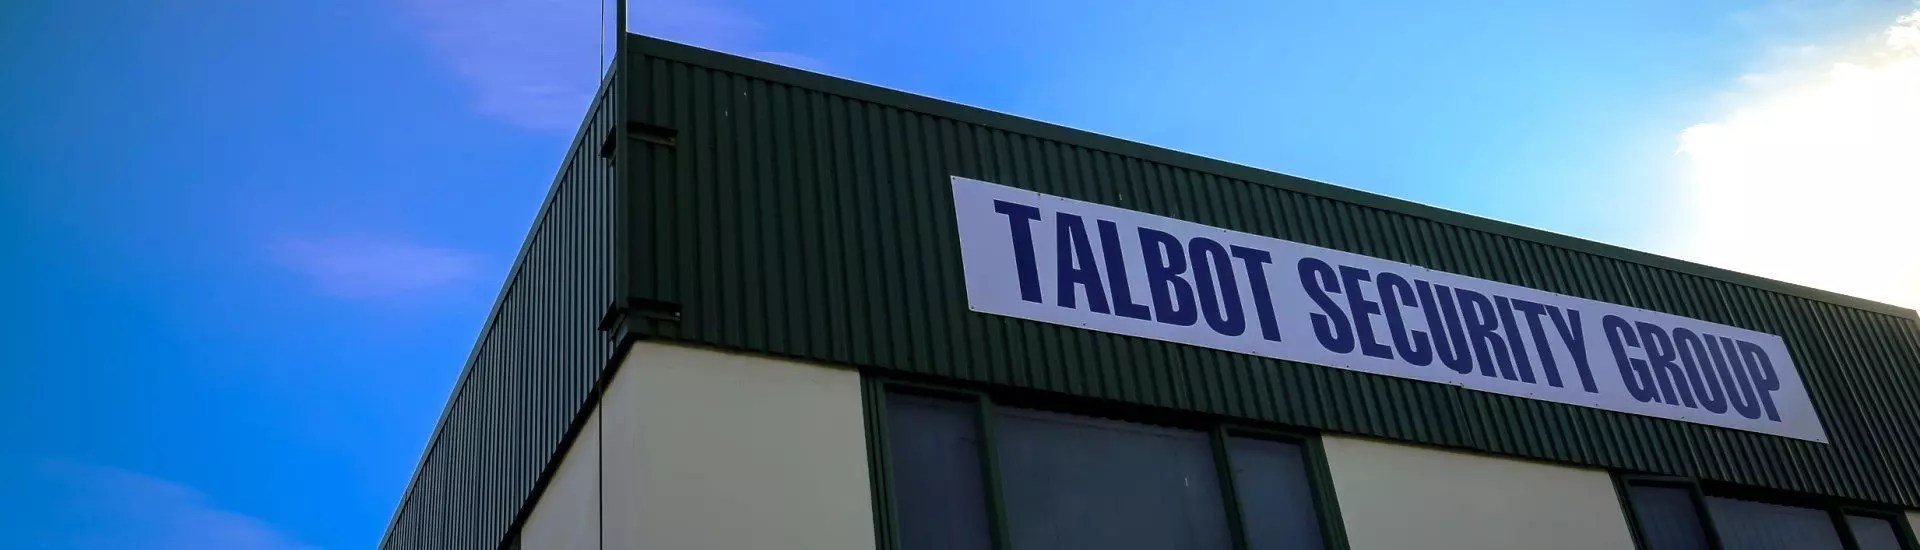 Contact Us - Talbot Security Group Canterbury